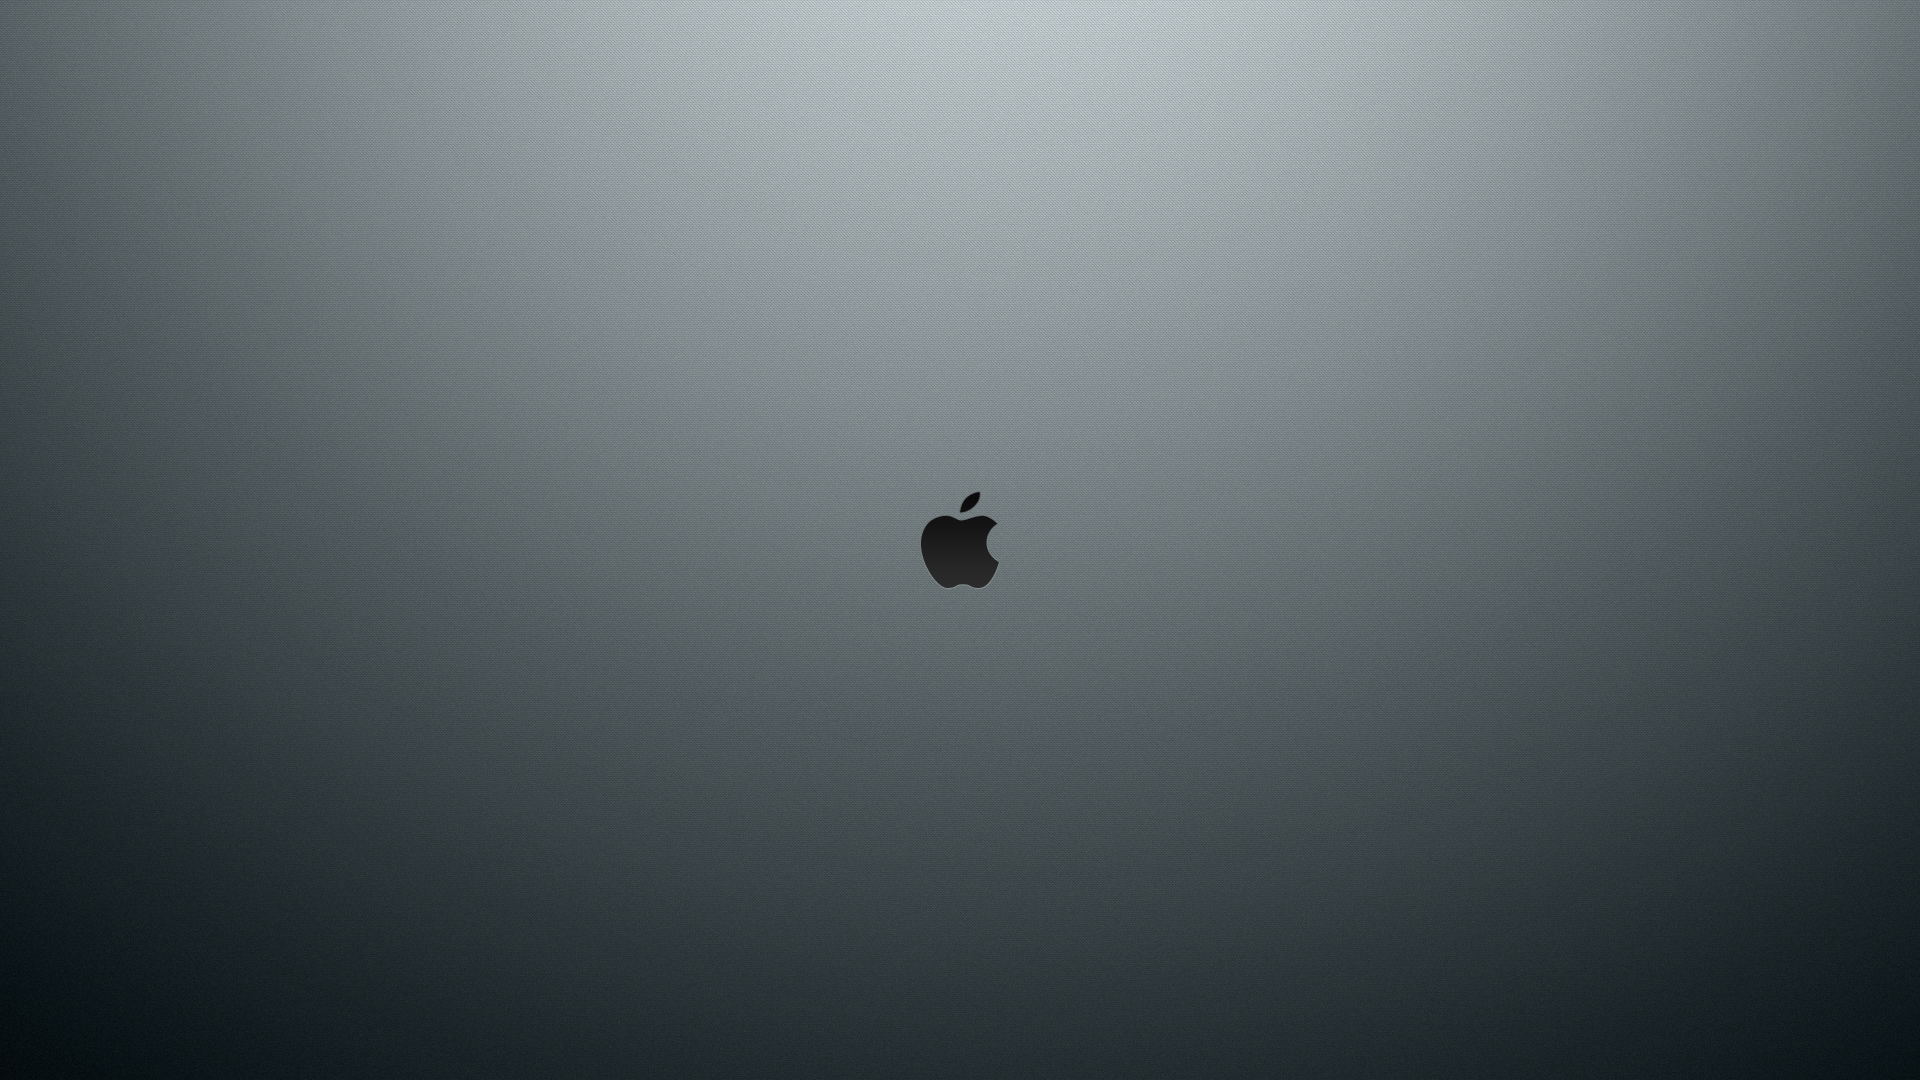 Apple Logo Hd Wallpapers For Iphone 1920 1080 Apple Logo: Just The Apple Logo